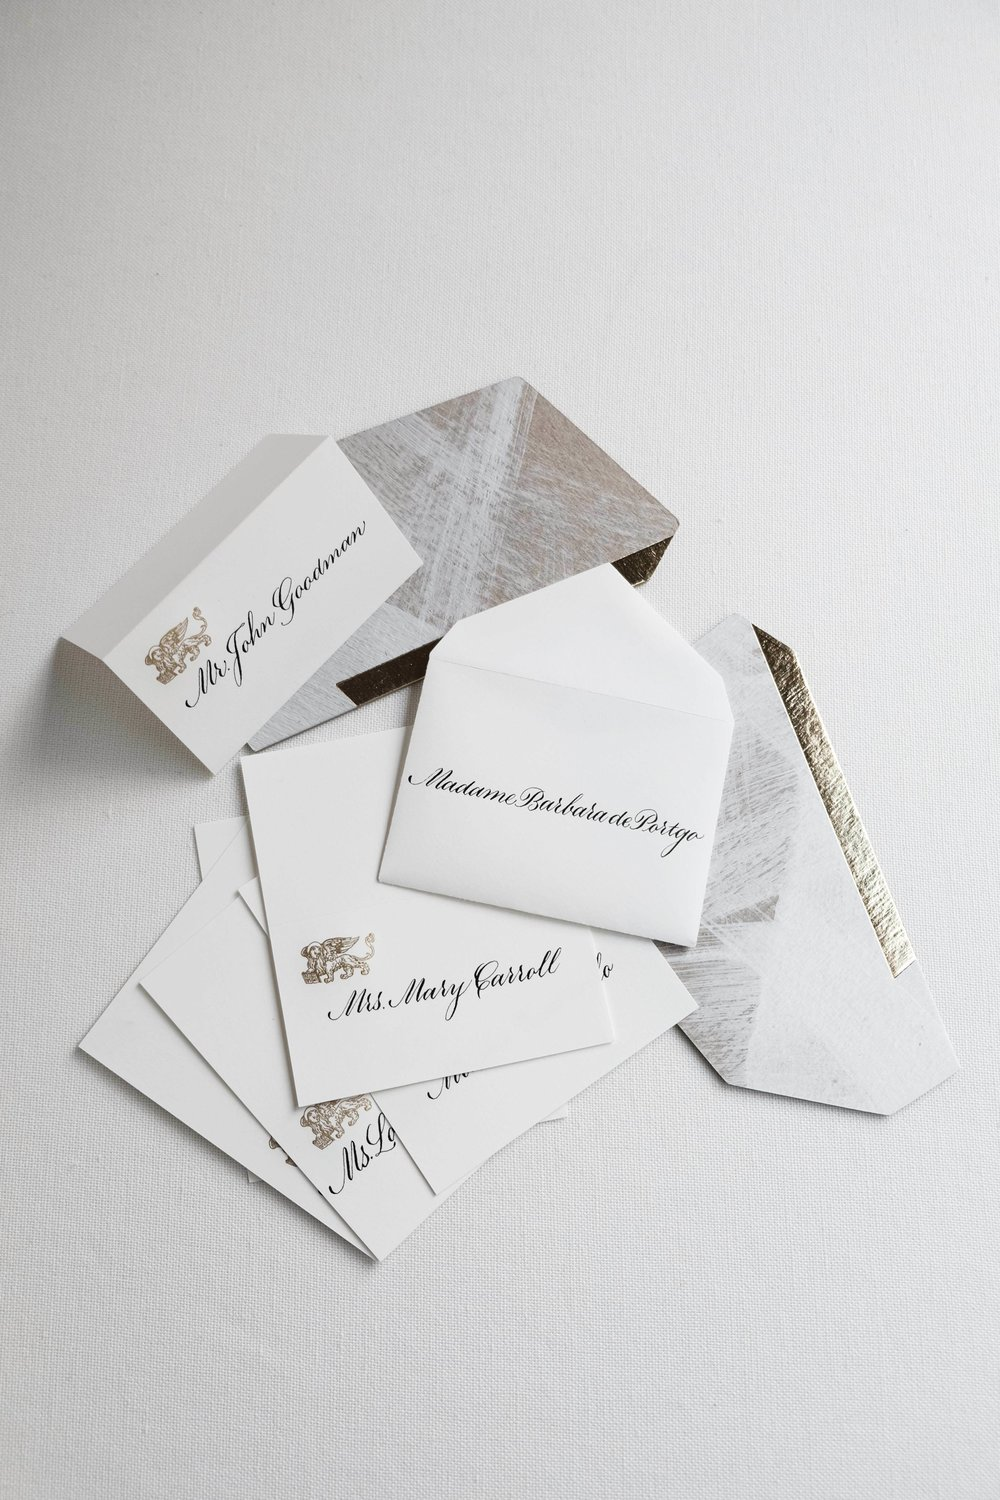 Custom calligraphy place cards and escort cards by Studio Chavelli // www.chavelli.com